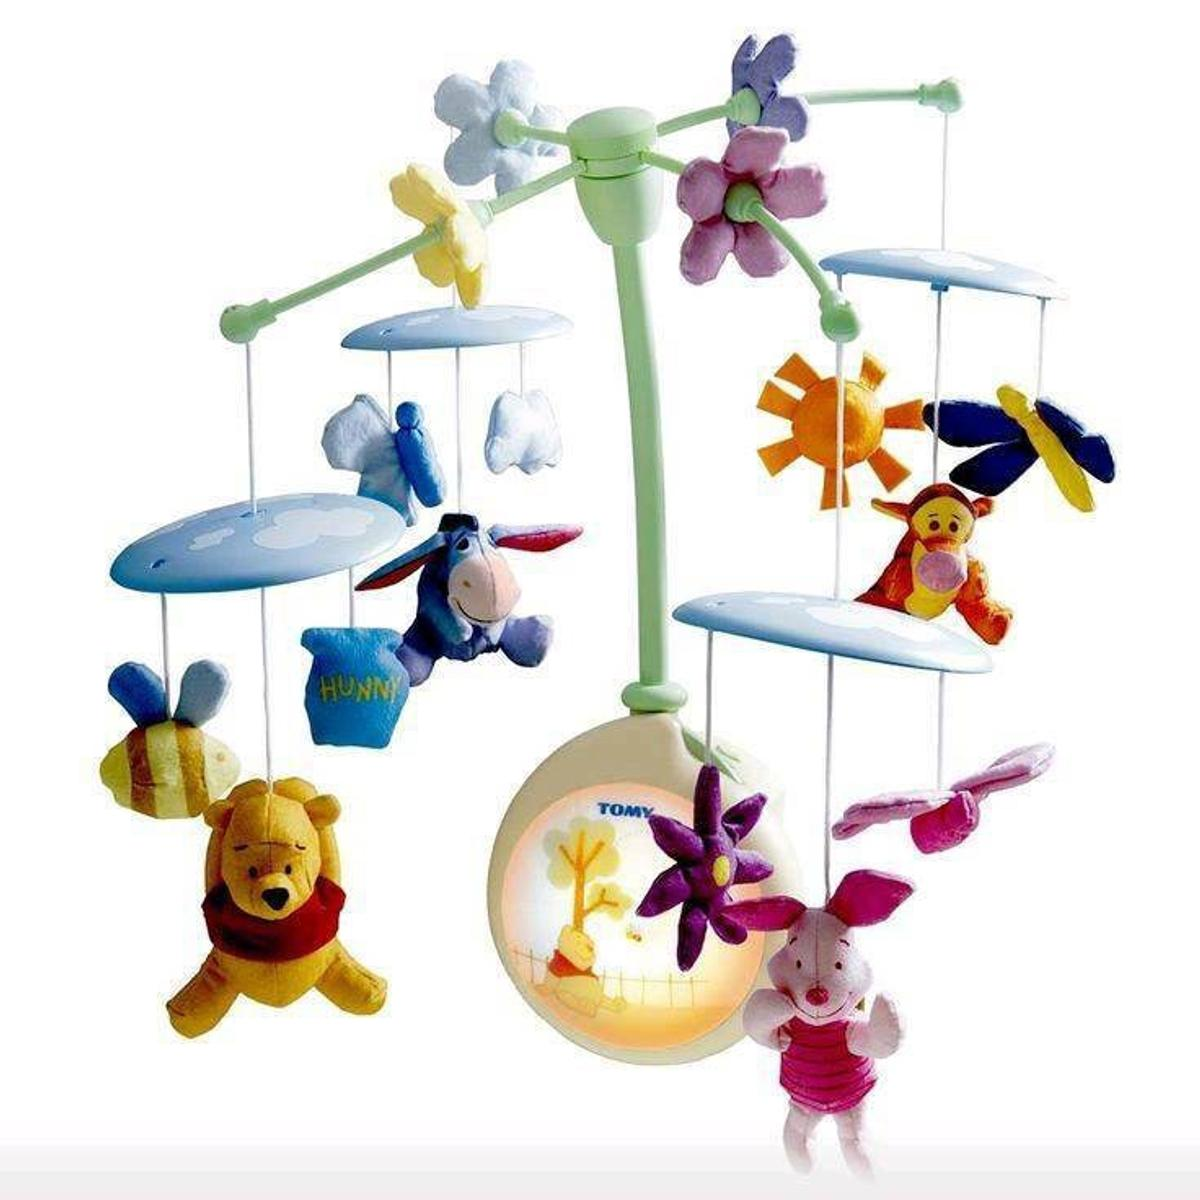 Winnie Pooh Mobile in 4540 Bad Hall for €15.00 for sale | Shpock